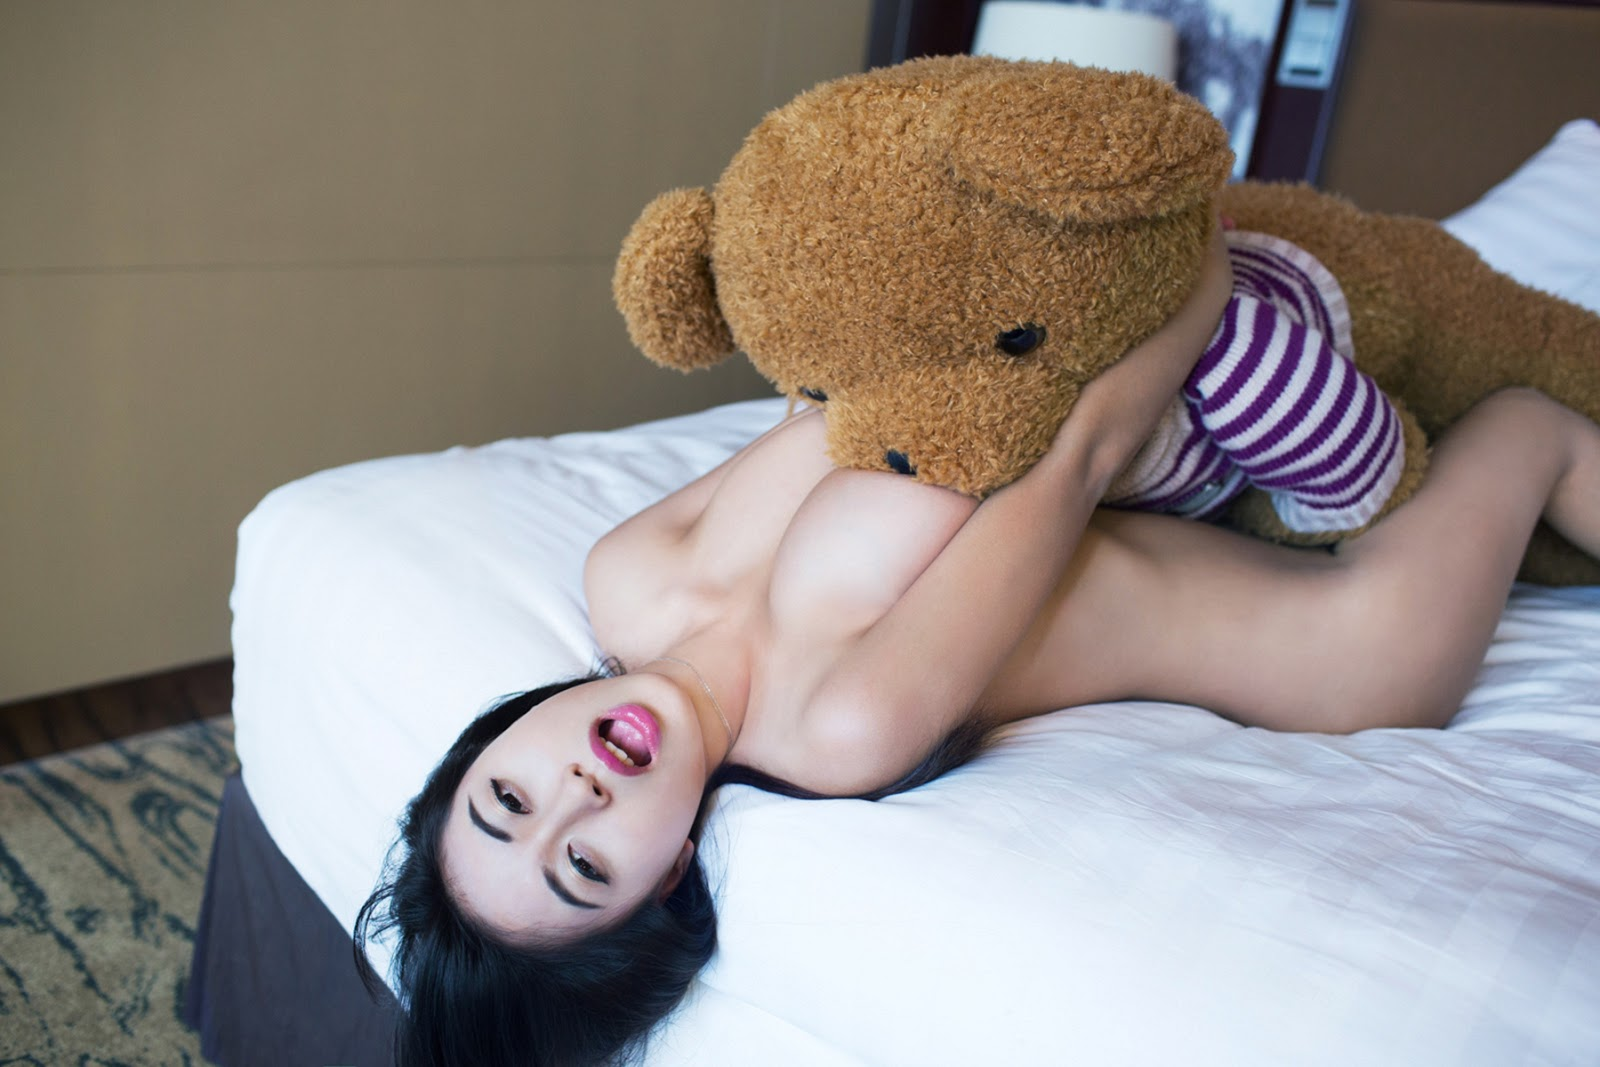 teen-bear-fucking-hot-girl-life